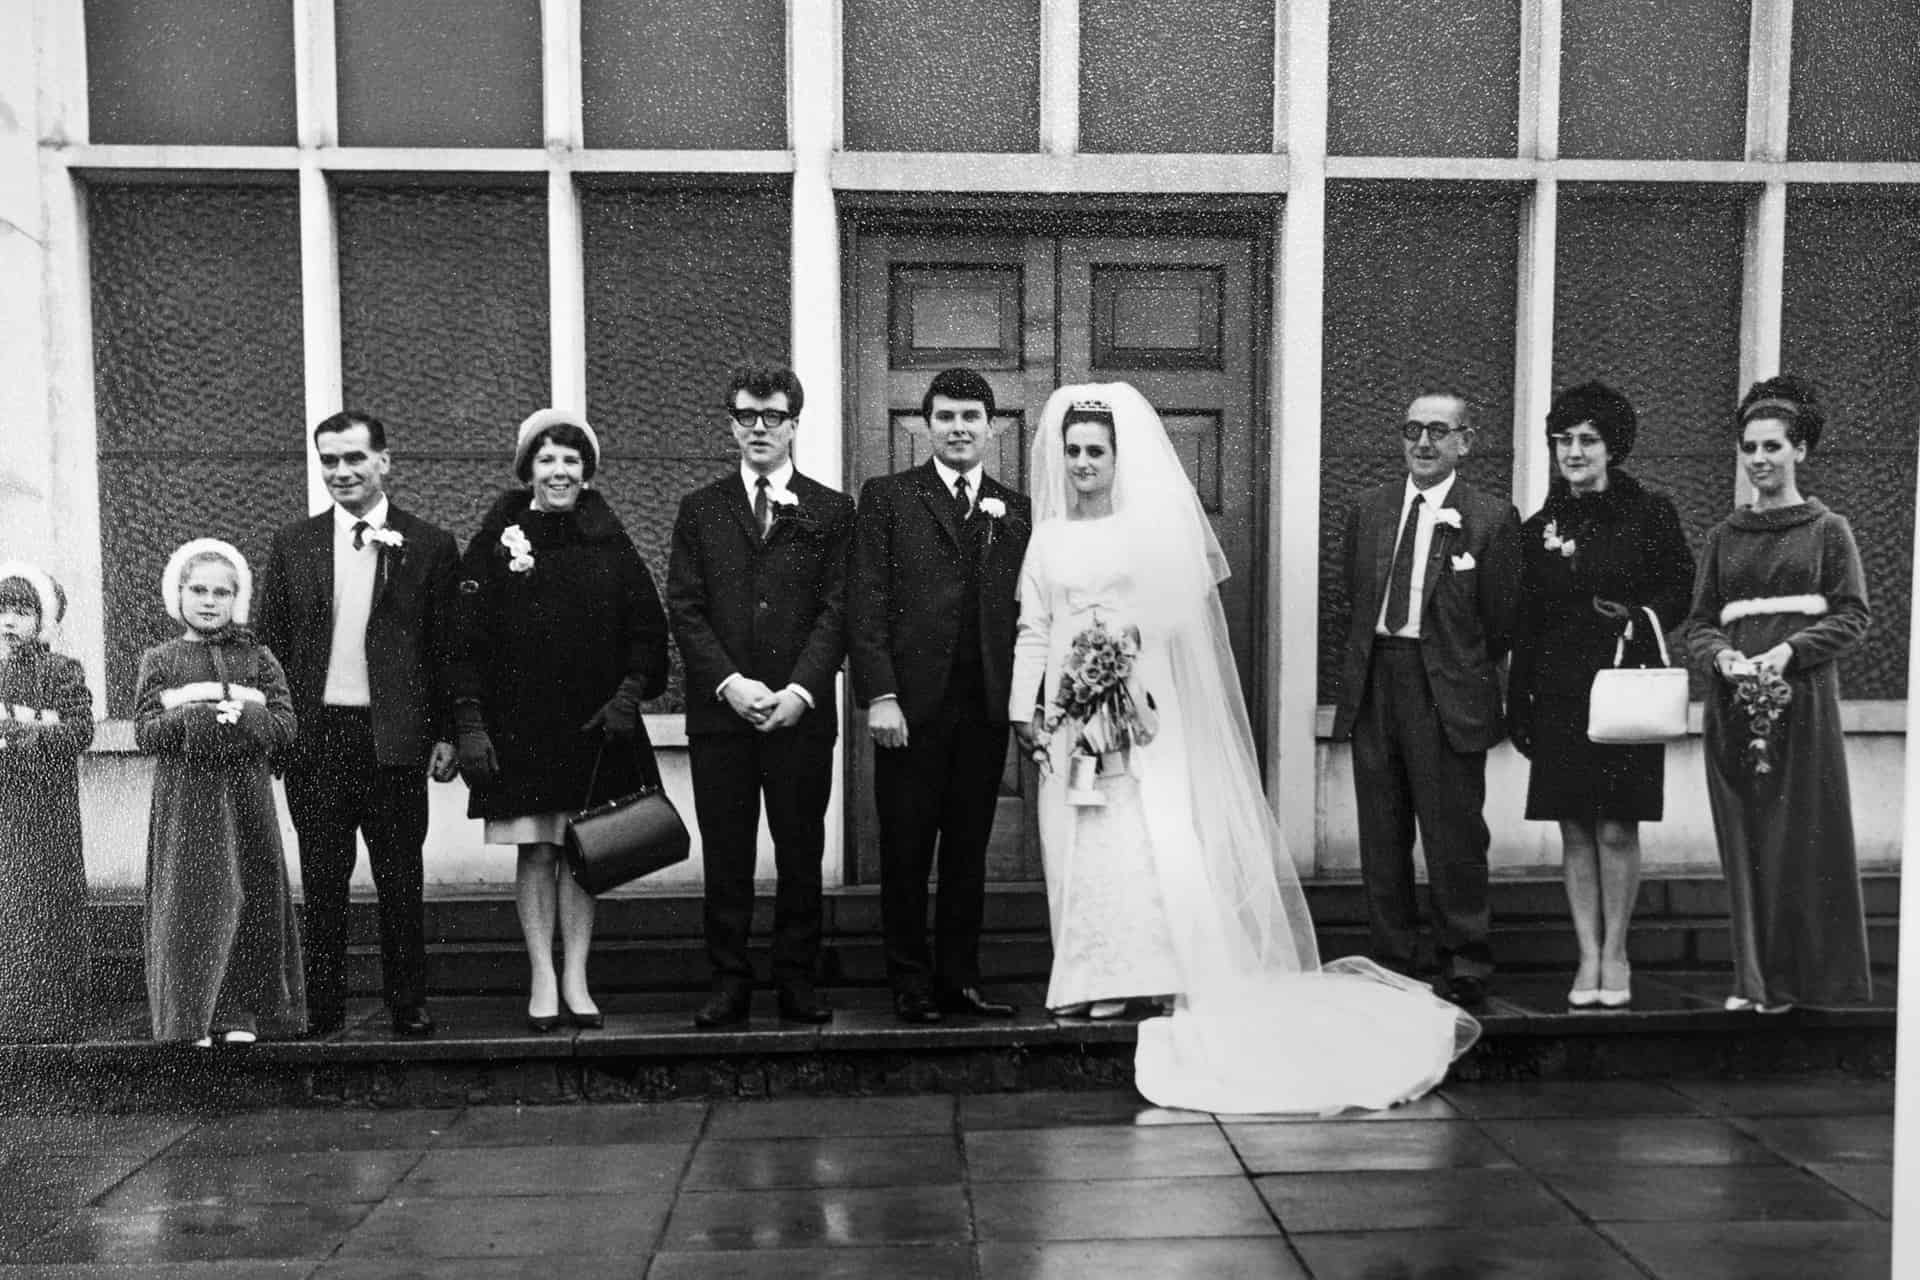 So that's me and Alan on our wedding day. On Alan's right is his best friend Terry, who died unexpectedly. They'd been best friends since they were 5, and it was tragic.